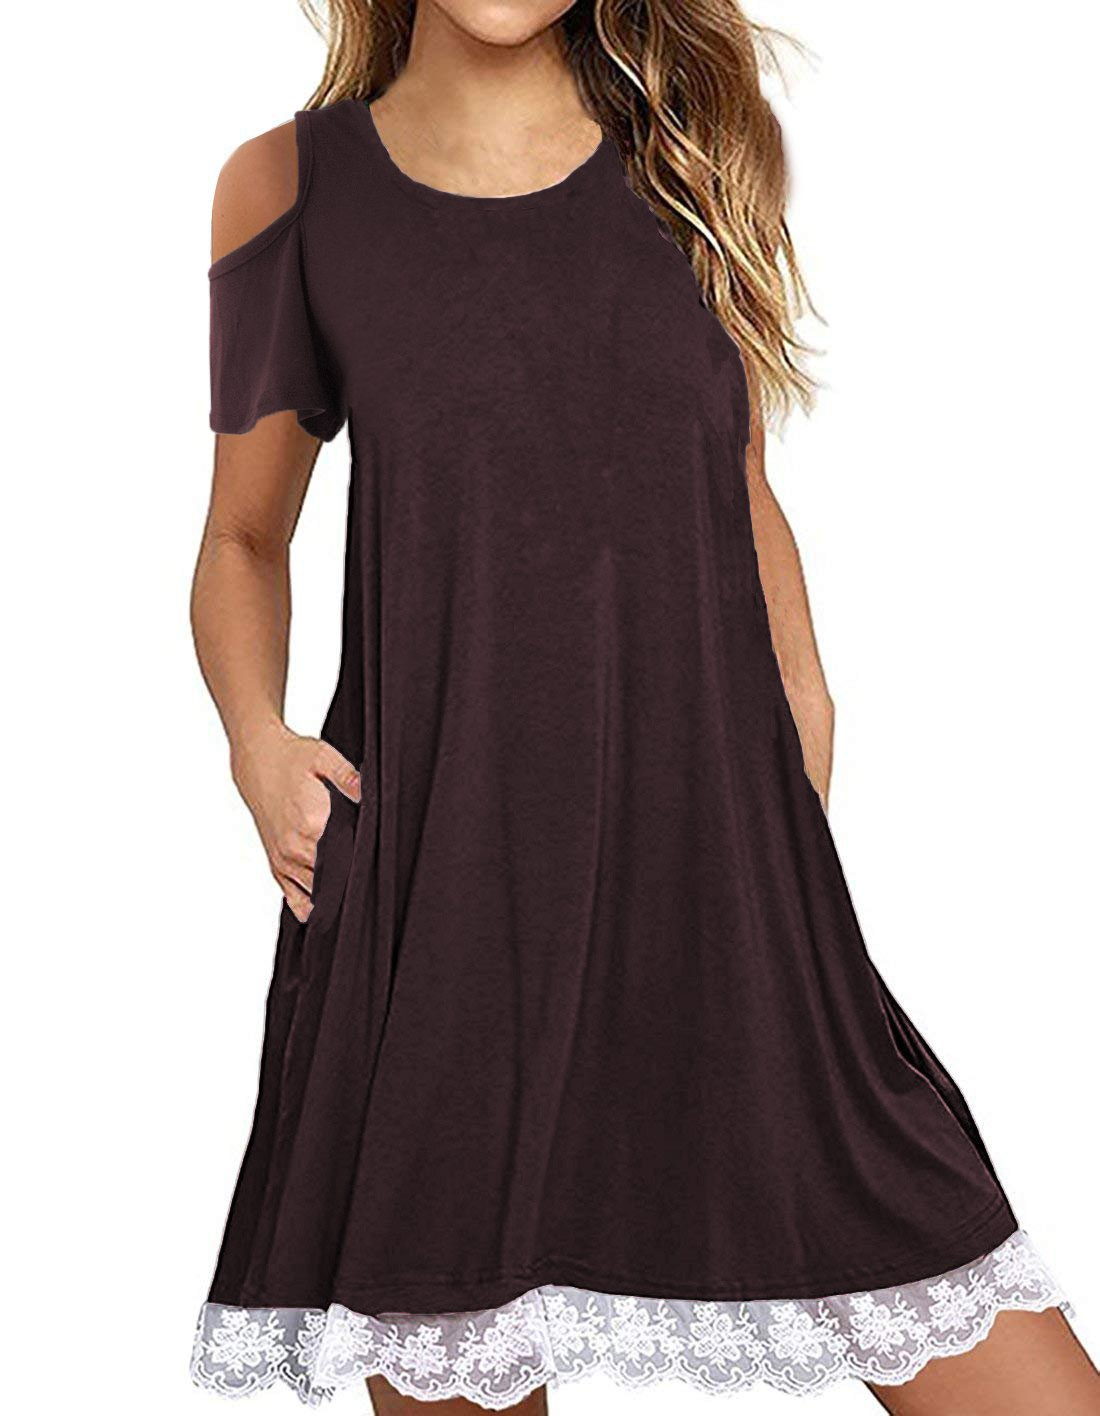 Uniboutique Women Cold Shoulder Short Sleeve Casual Summer Loose Fit Lace Trim Flowy Tunic Top Blouse with Pockets Purple M